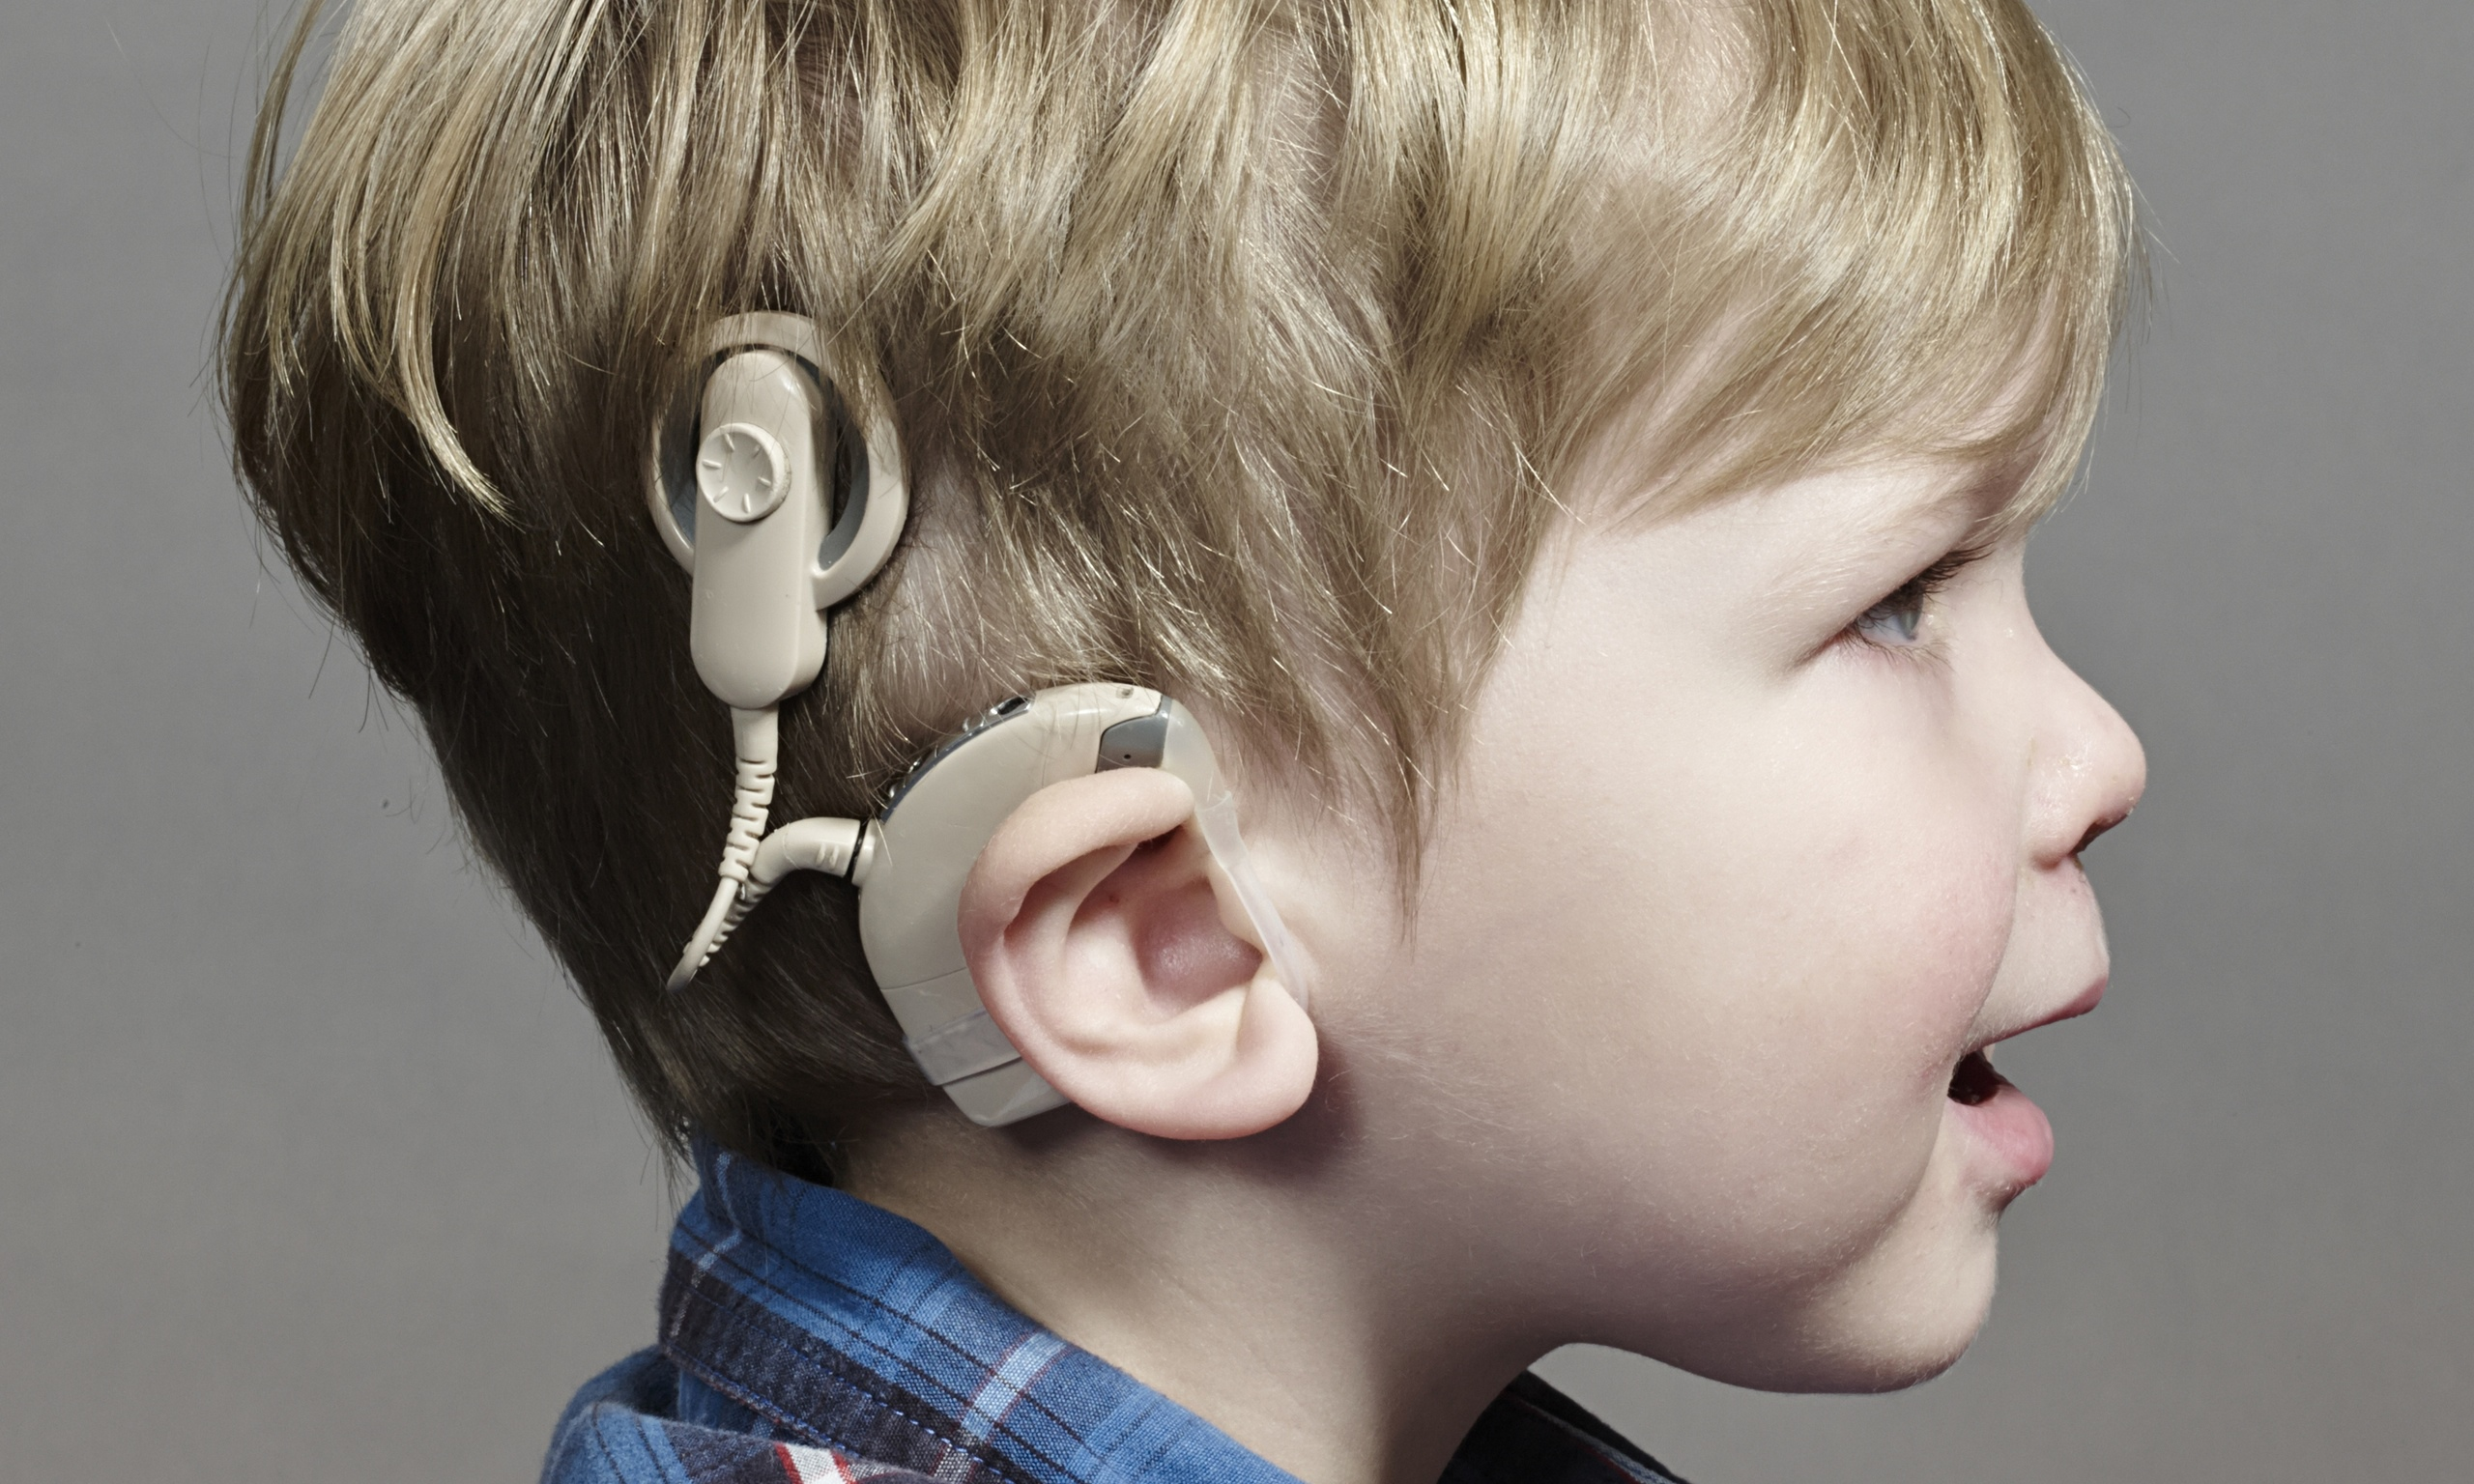 Story Of Kid With Cochlear Implant